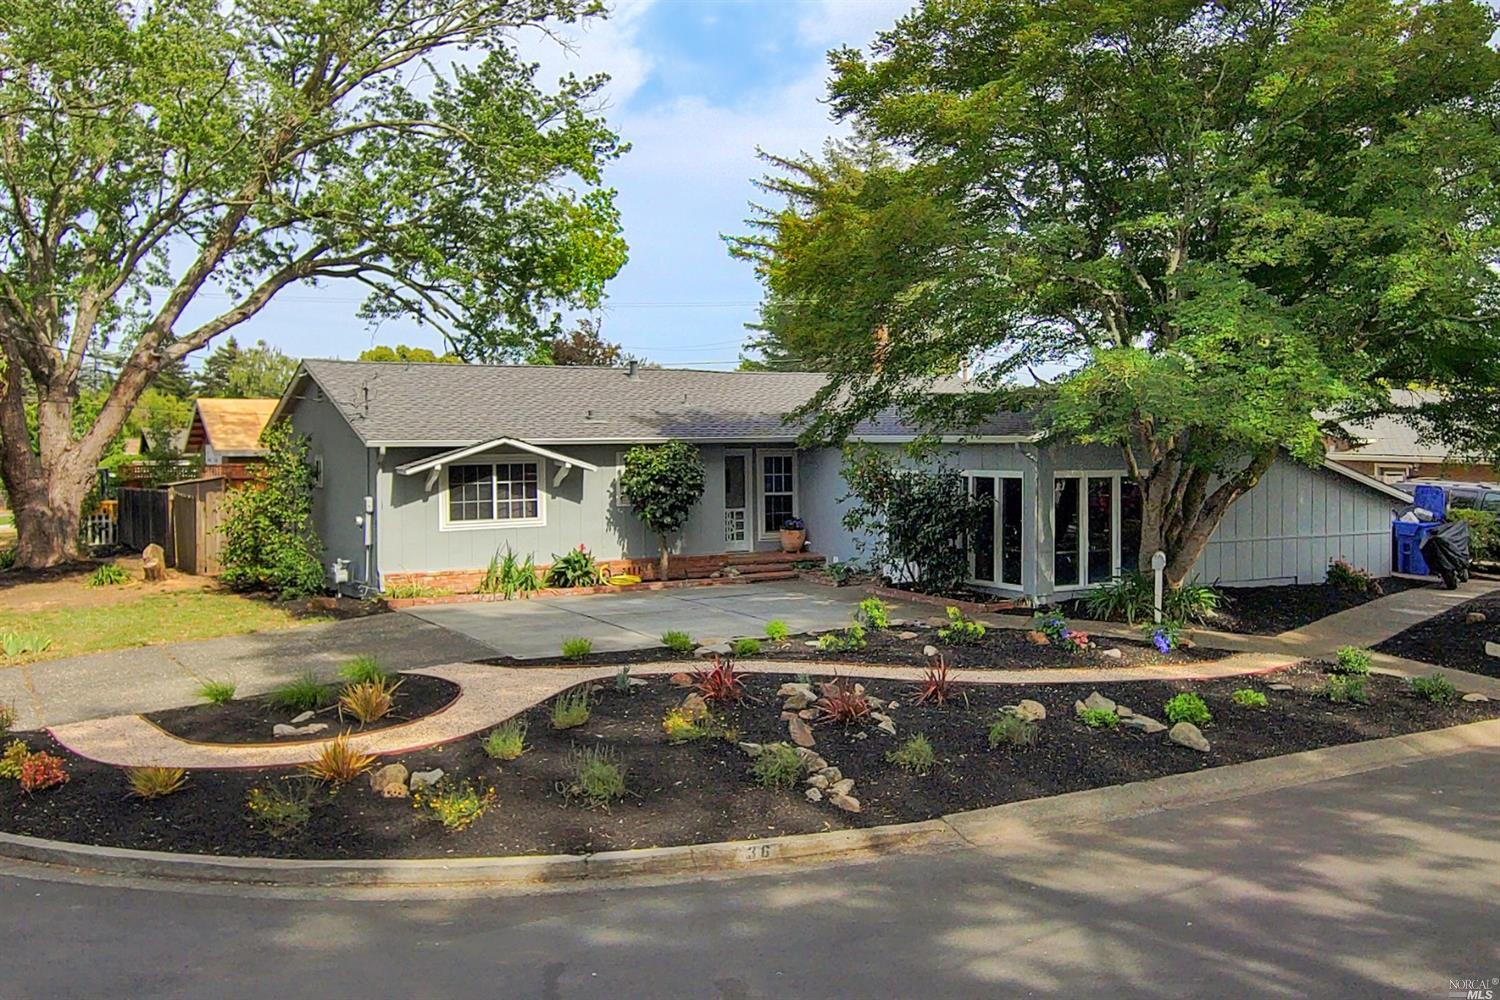 Welcome to 36 Harvard Ln, located in the desirable Browns Valley neighborhood in Napa.  This home fe